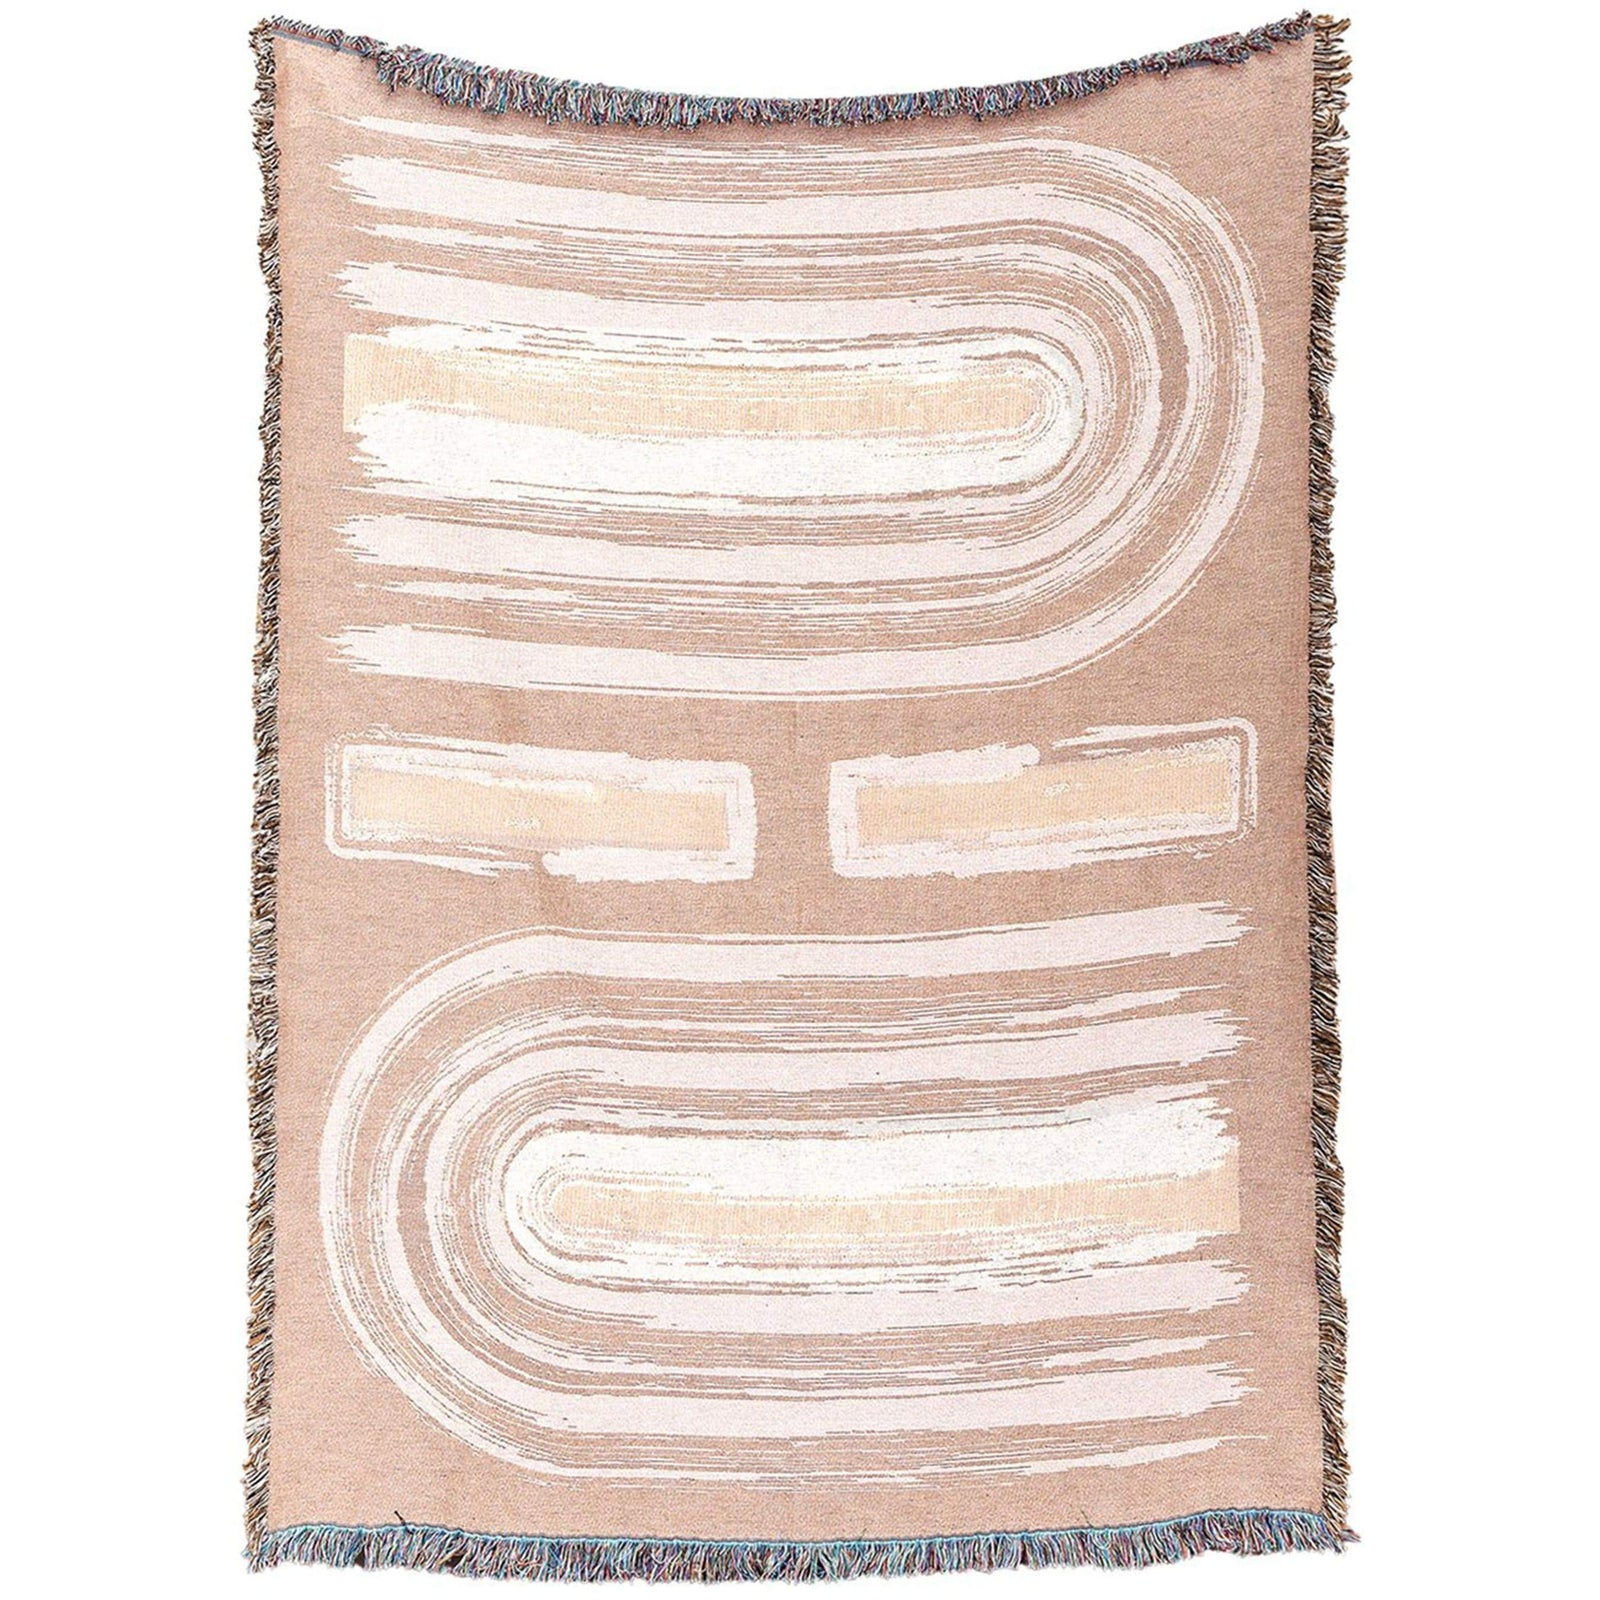 San Junipero Textile Studio Bedding Symmetry Cotton Throw